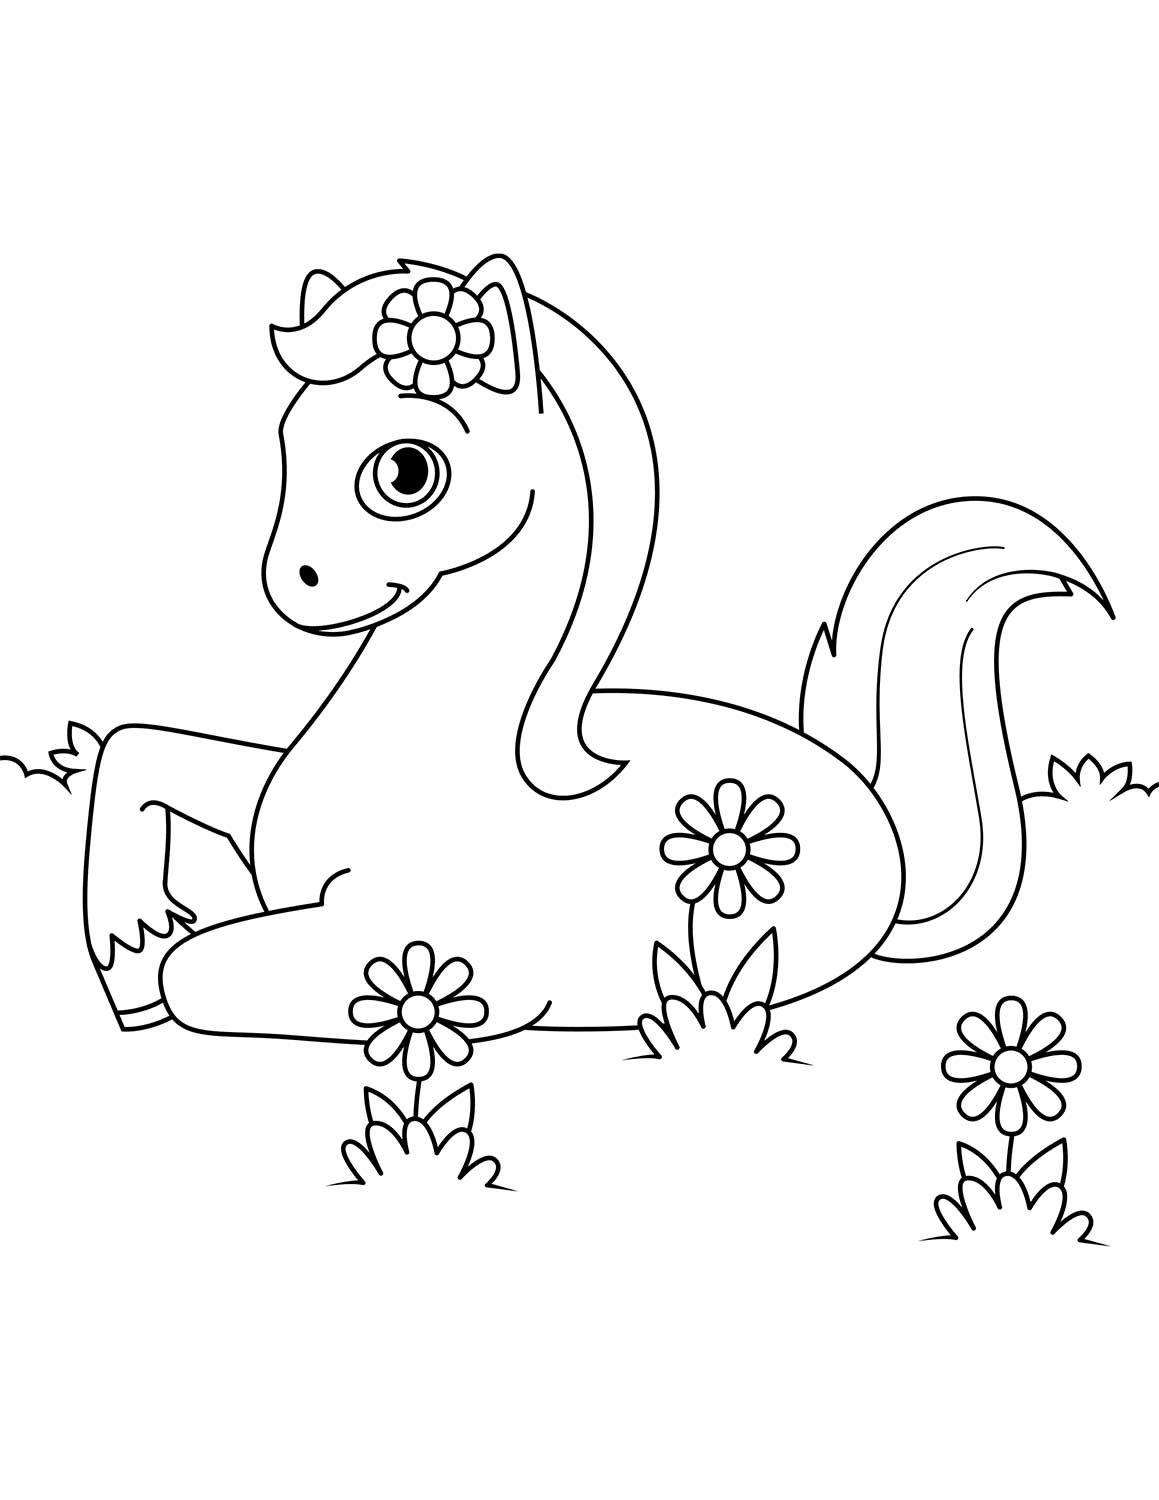 Cute Horse Laying Down In Flowers Coloring Page Horse Coloring Pages Horse Coloring Animal Coloring Pages